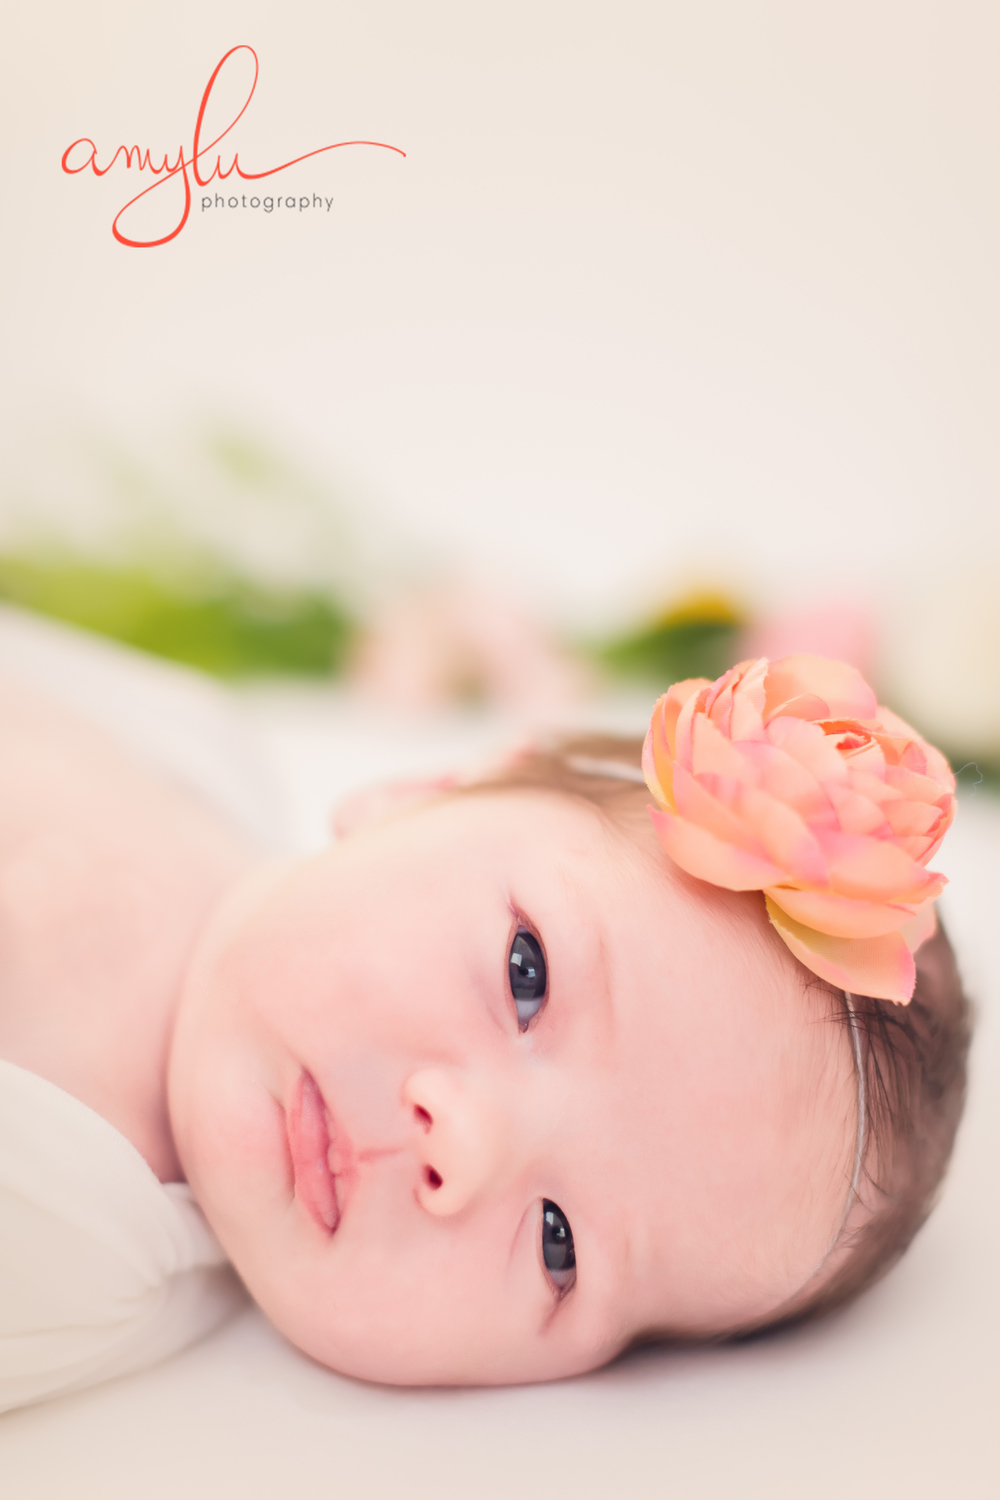 Lucy Kelley Newborn-8463.jpg